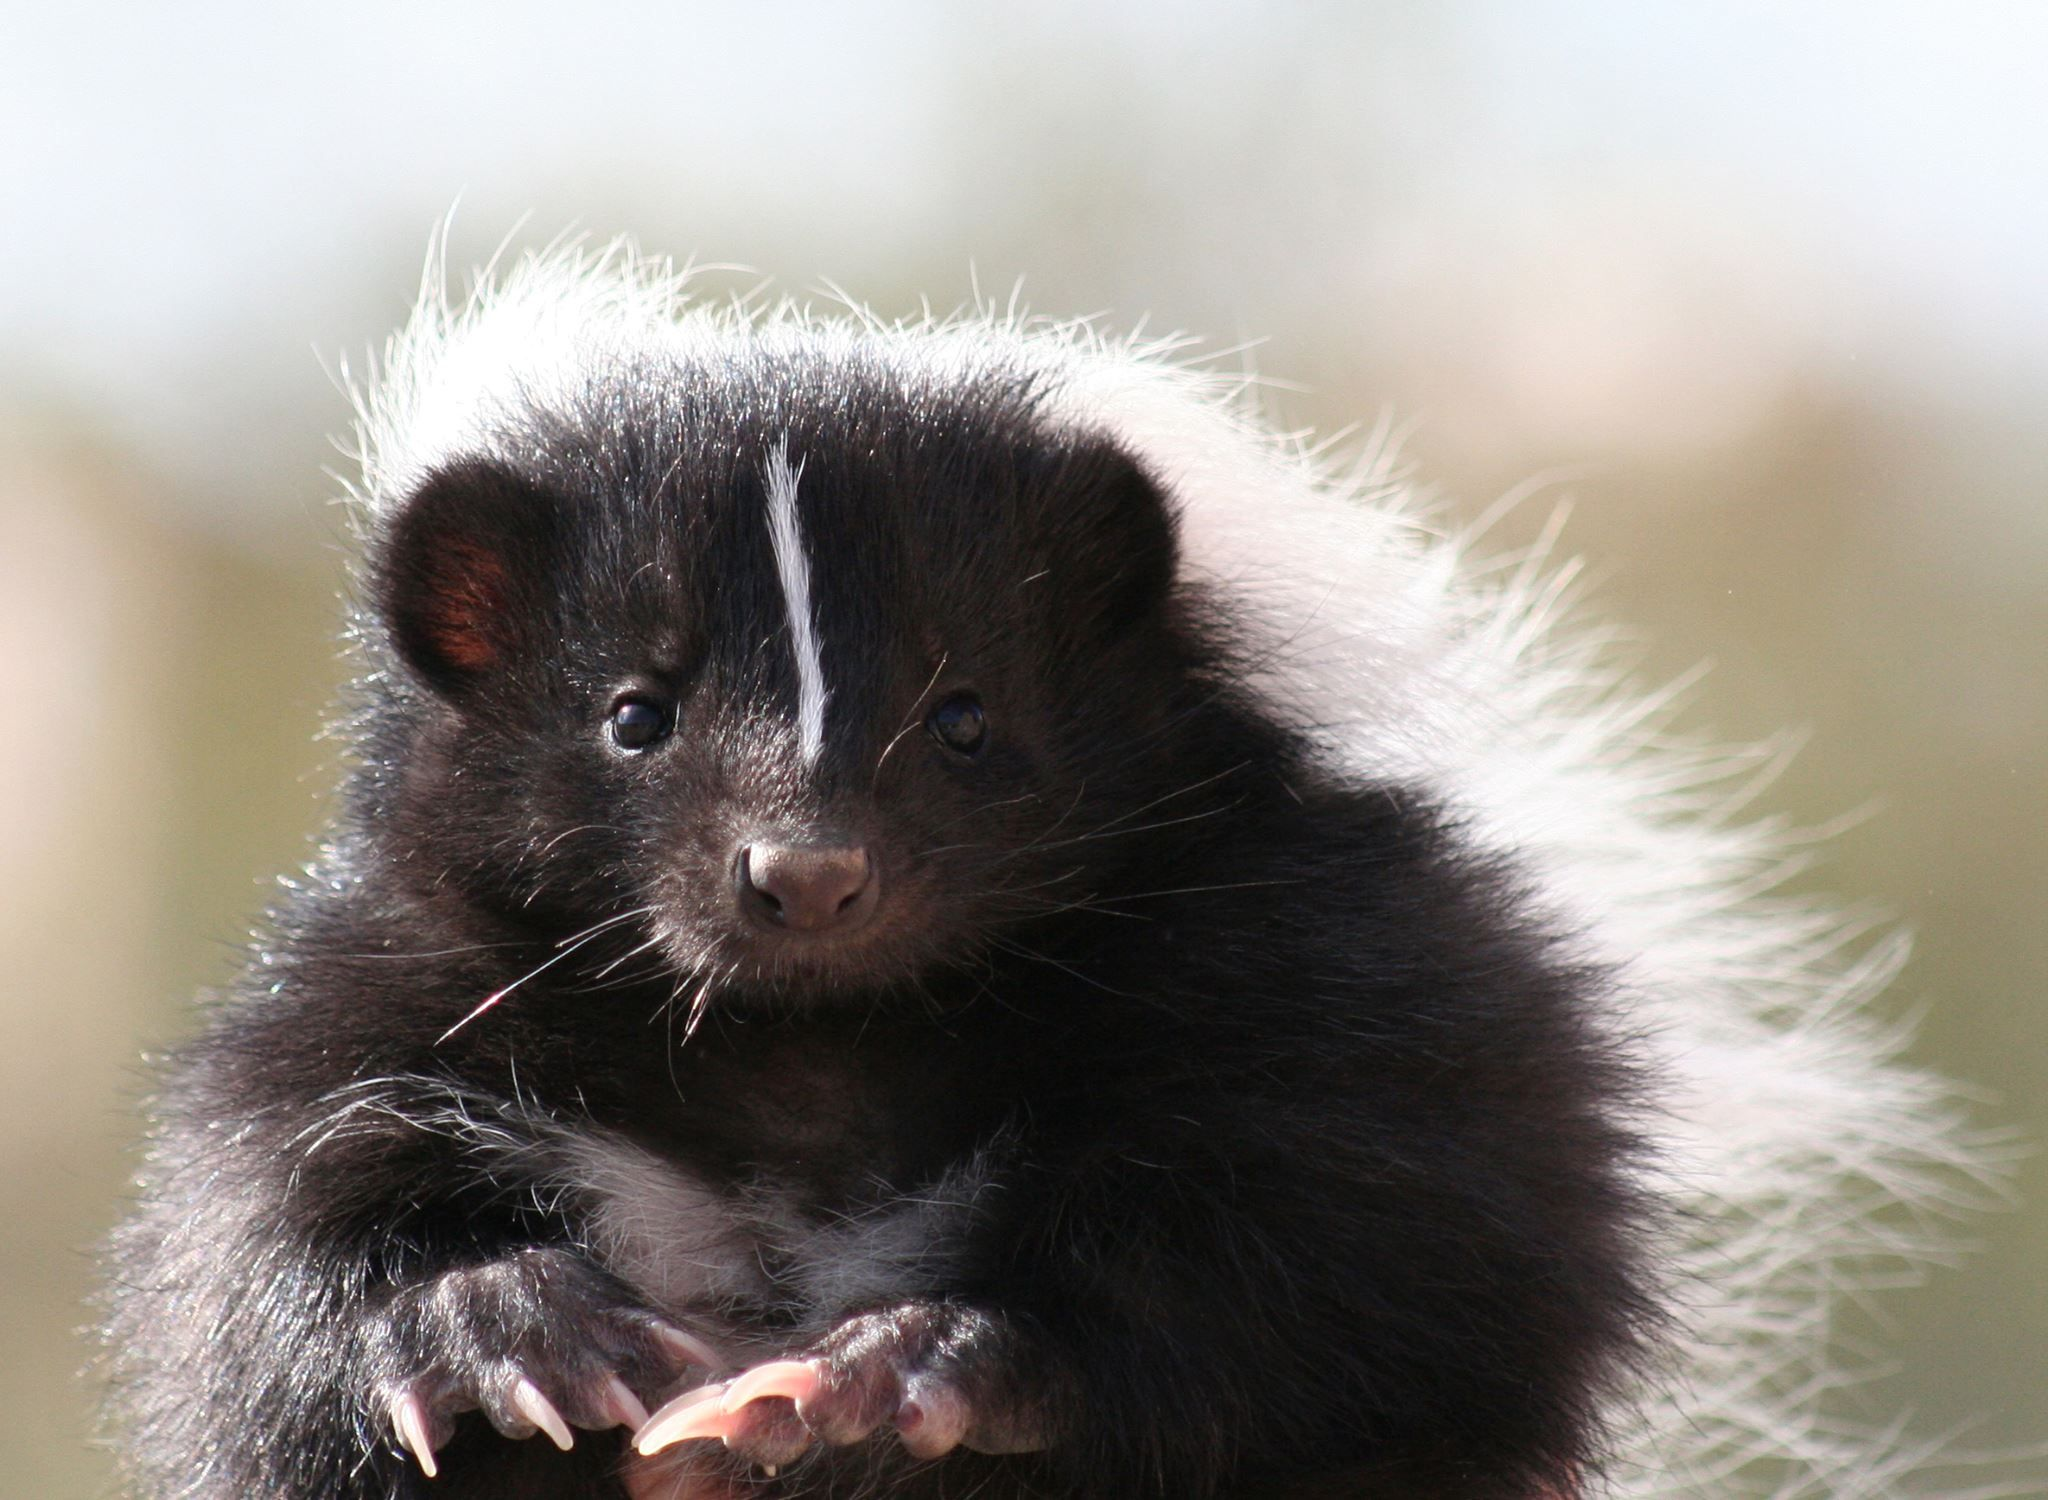 Hooded skunk. Their tails are longer than their bodies - usually over 1 foot in length!